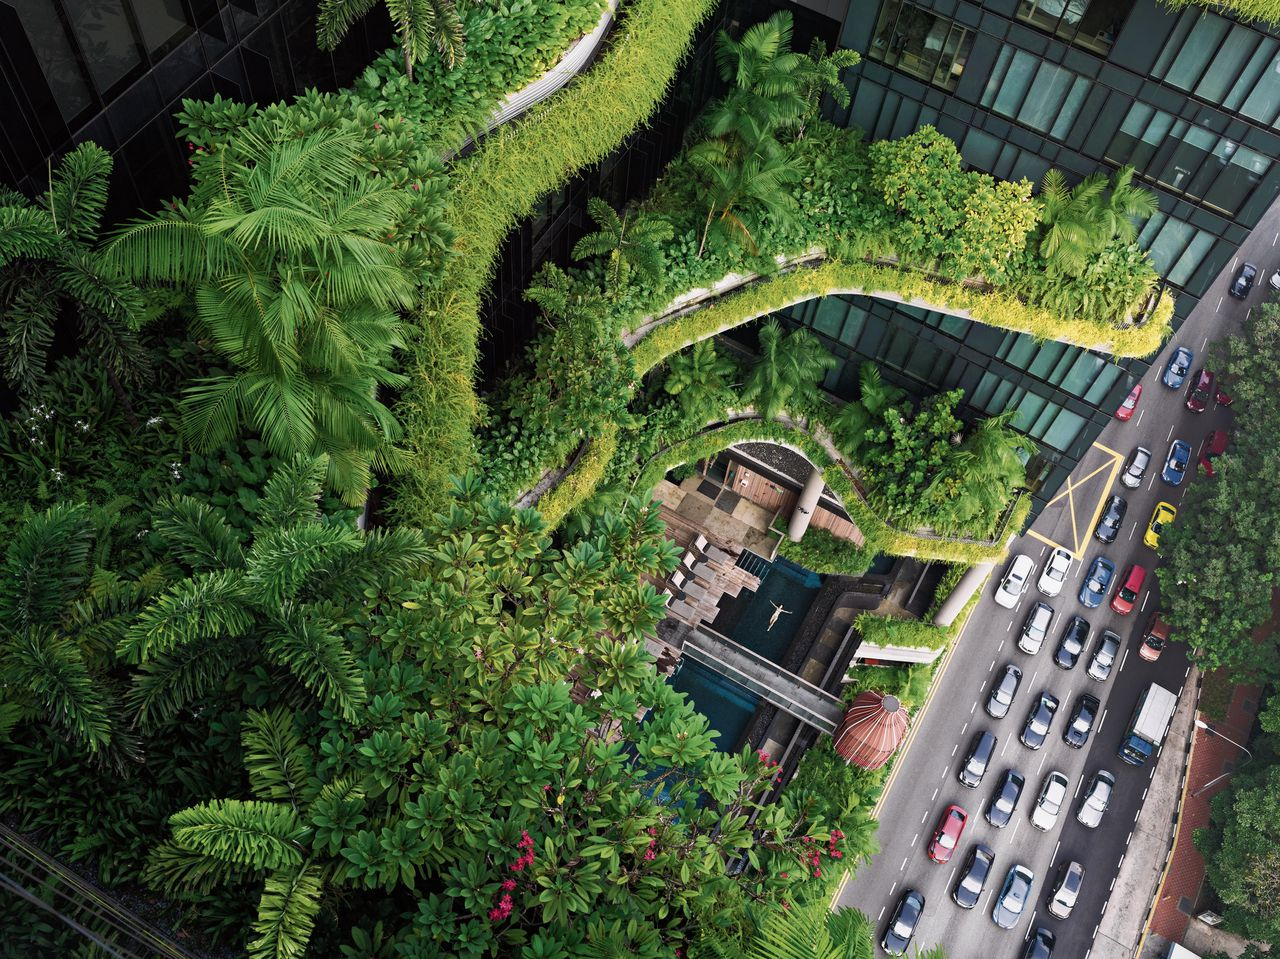 Lucas Foglia, Esme zwemmend, Parkroyal on Pickering, Singapore